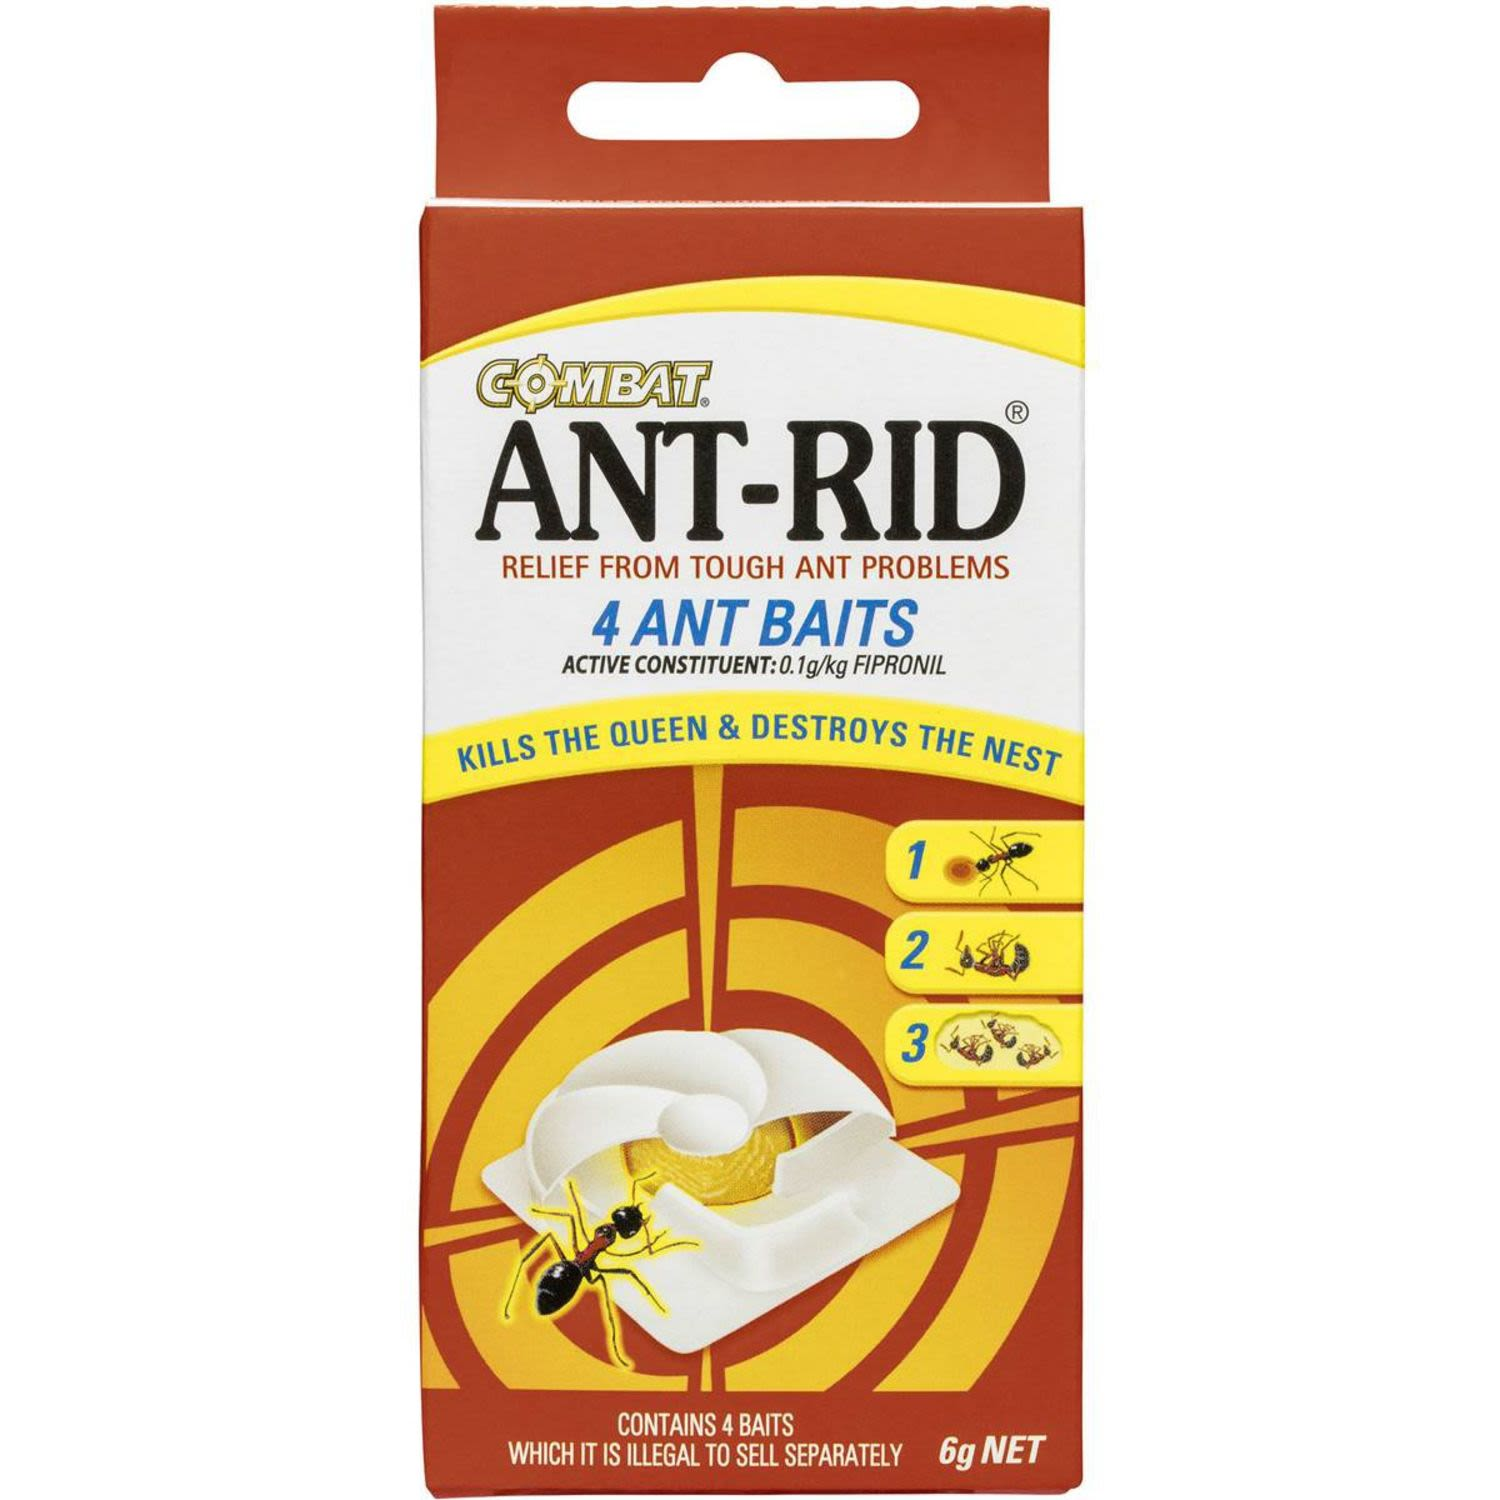 Combat Ant Rid Bait, Destroys the Nest, Insecticide, 4 Each